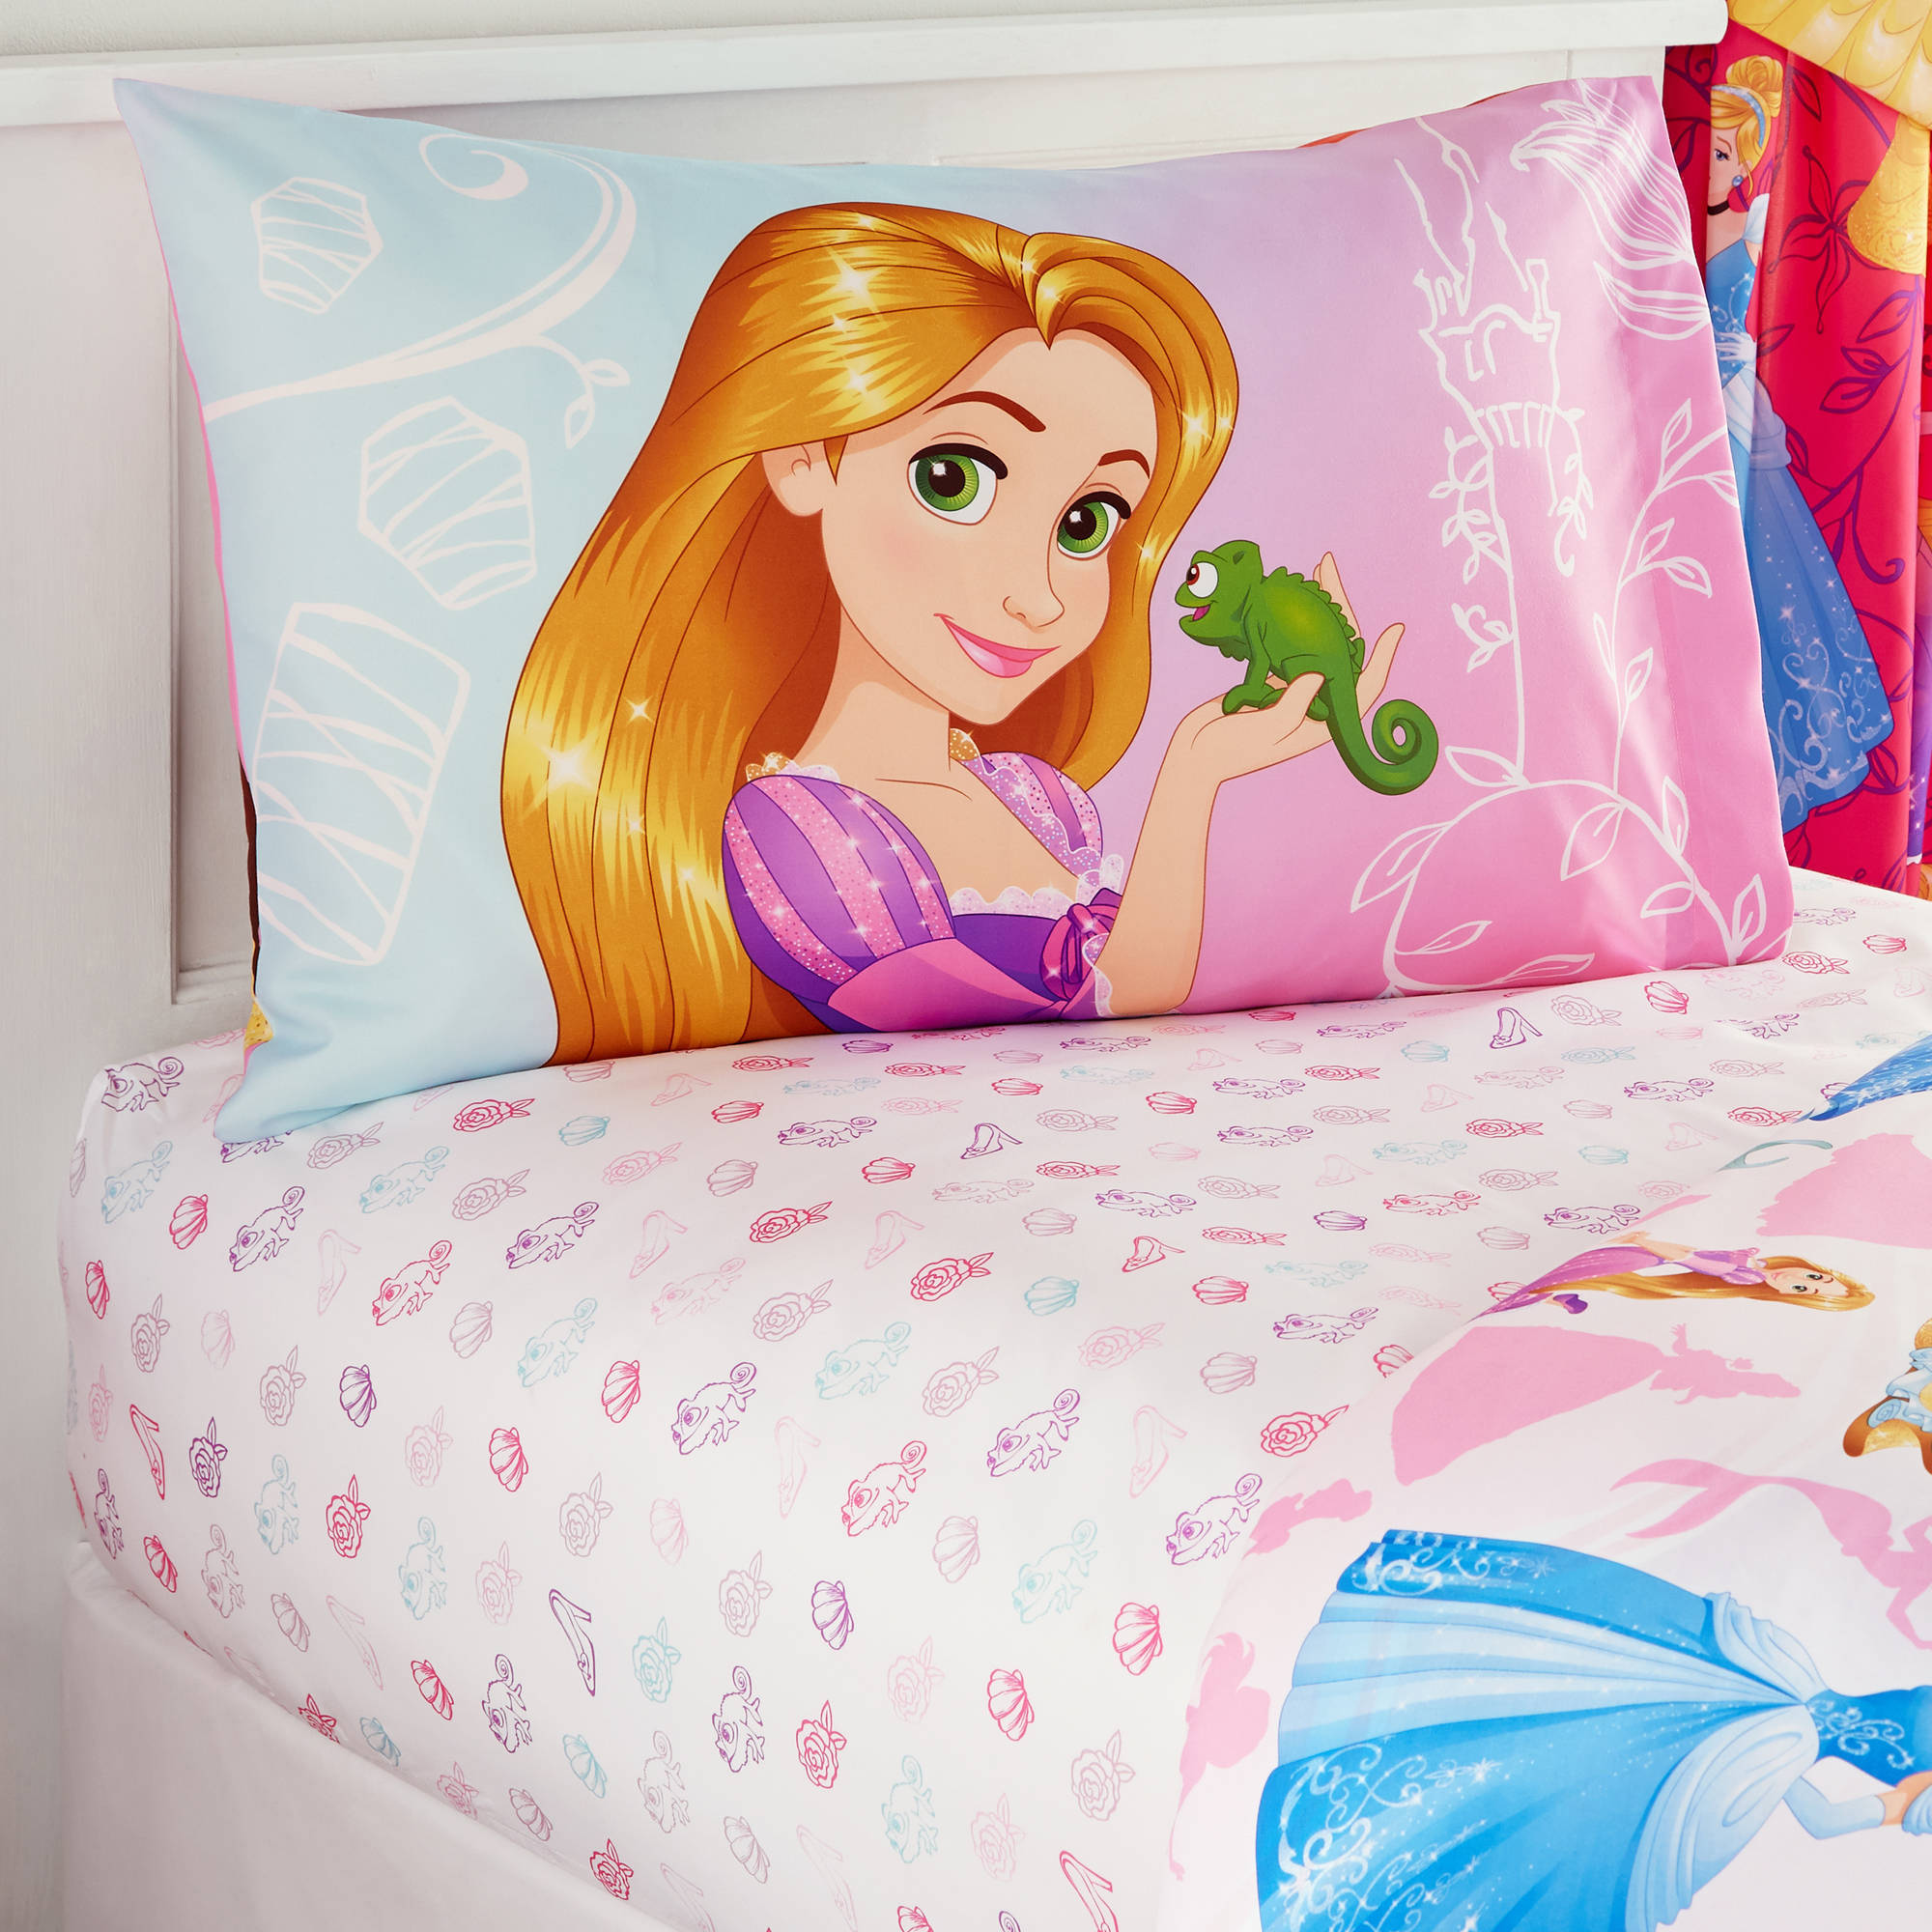 Disney Princess Bedazzling Princess Bedding Sheet Set